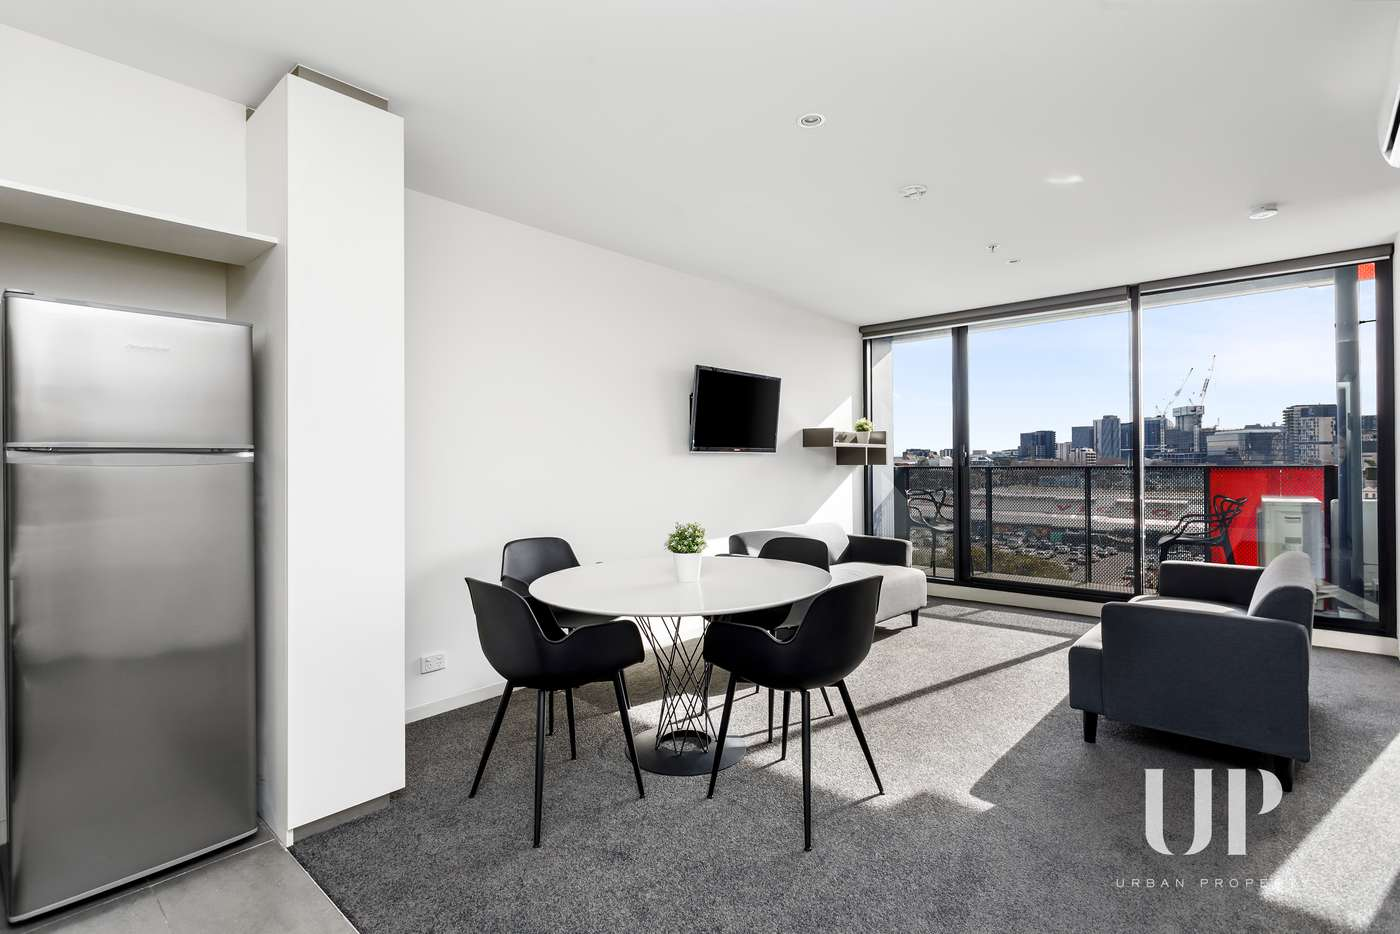 Main view of Homely apartment listing, 604/253 Franklin Street, Melbourne VIC 3000